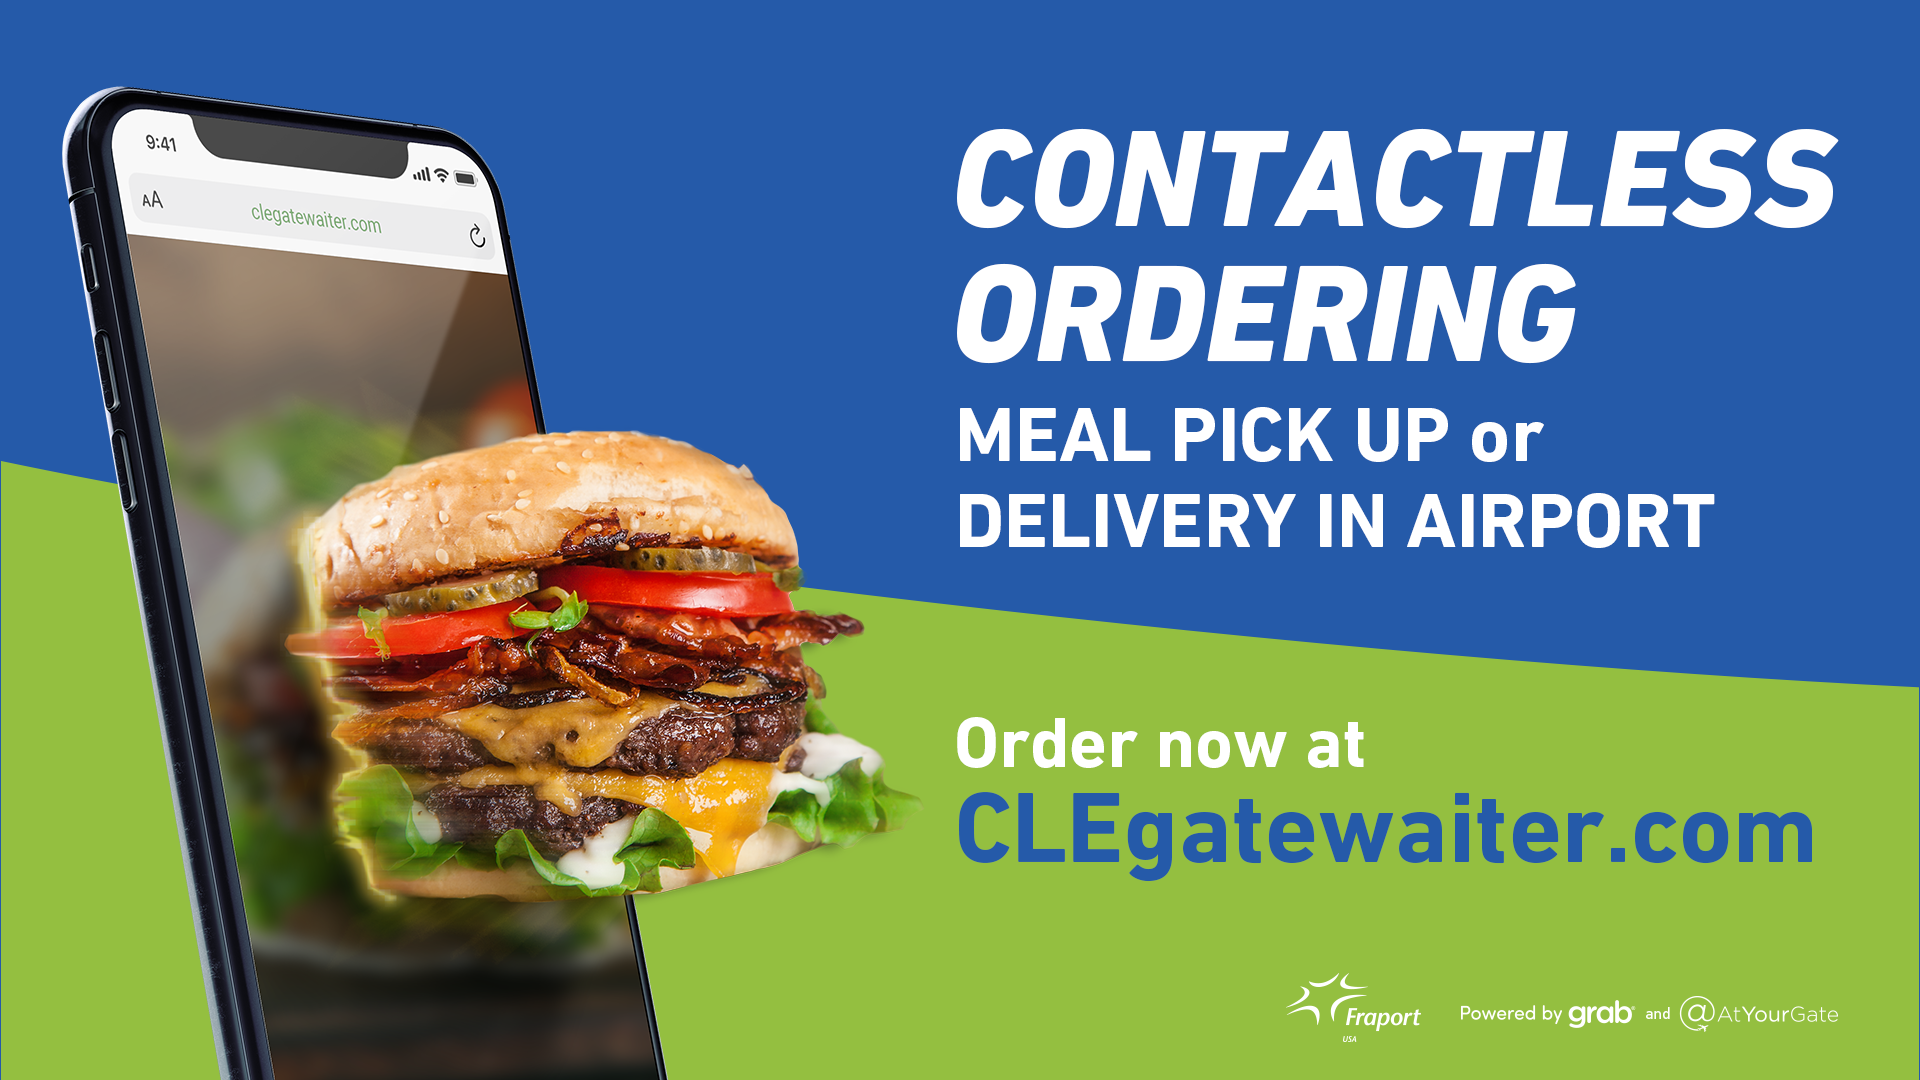 New GateWaiter Mobile Meal Delivery Service takes off at CLE